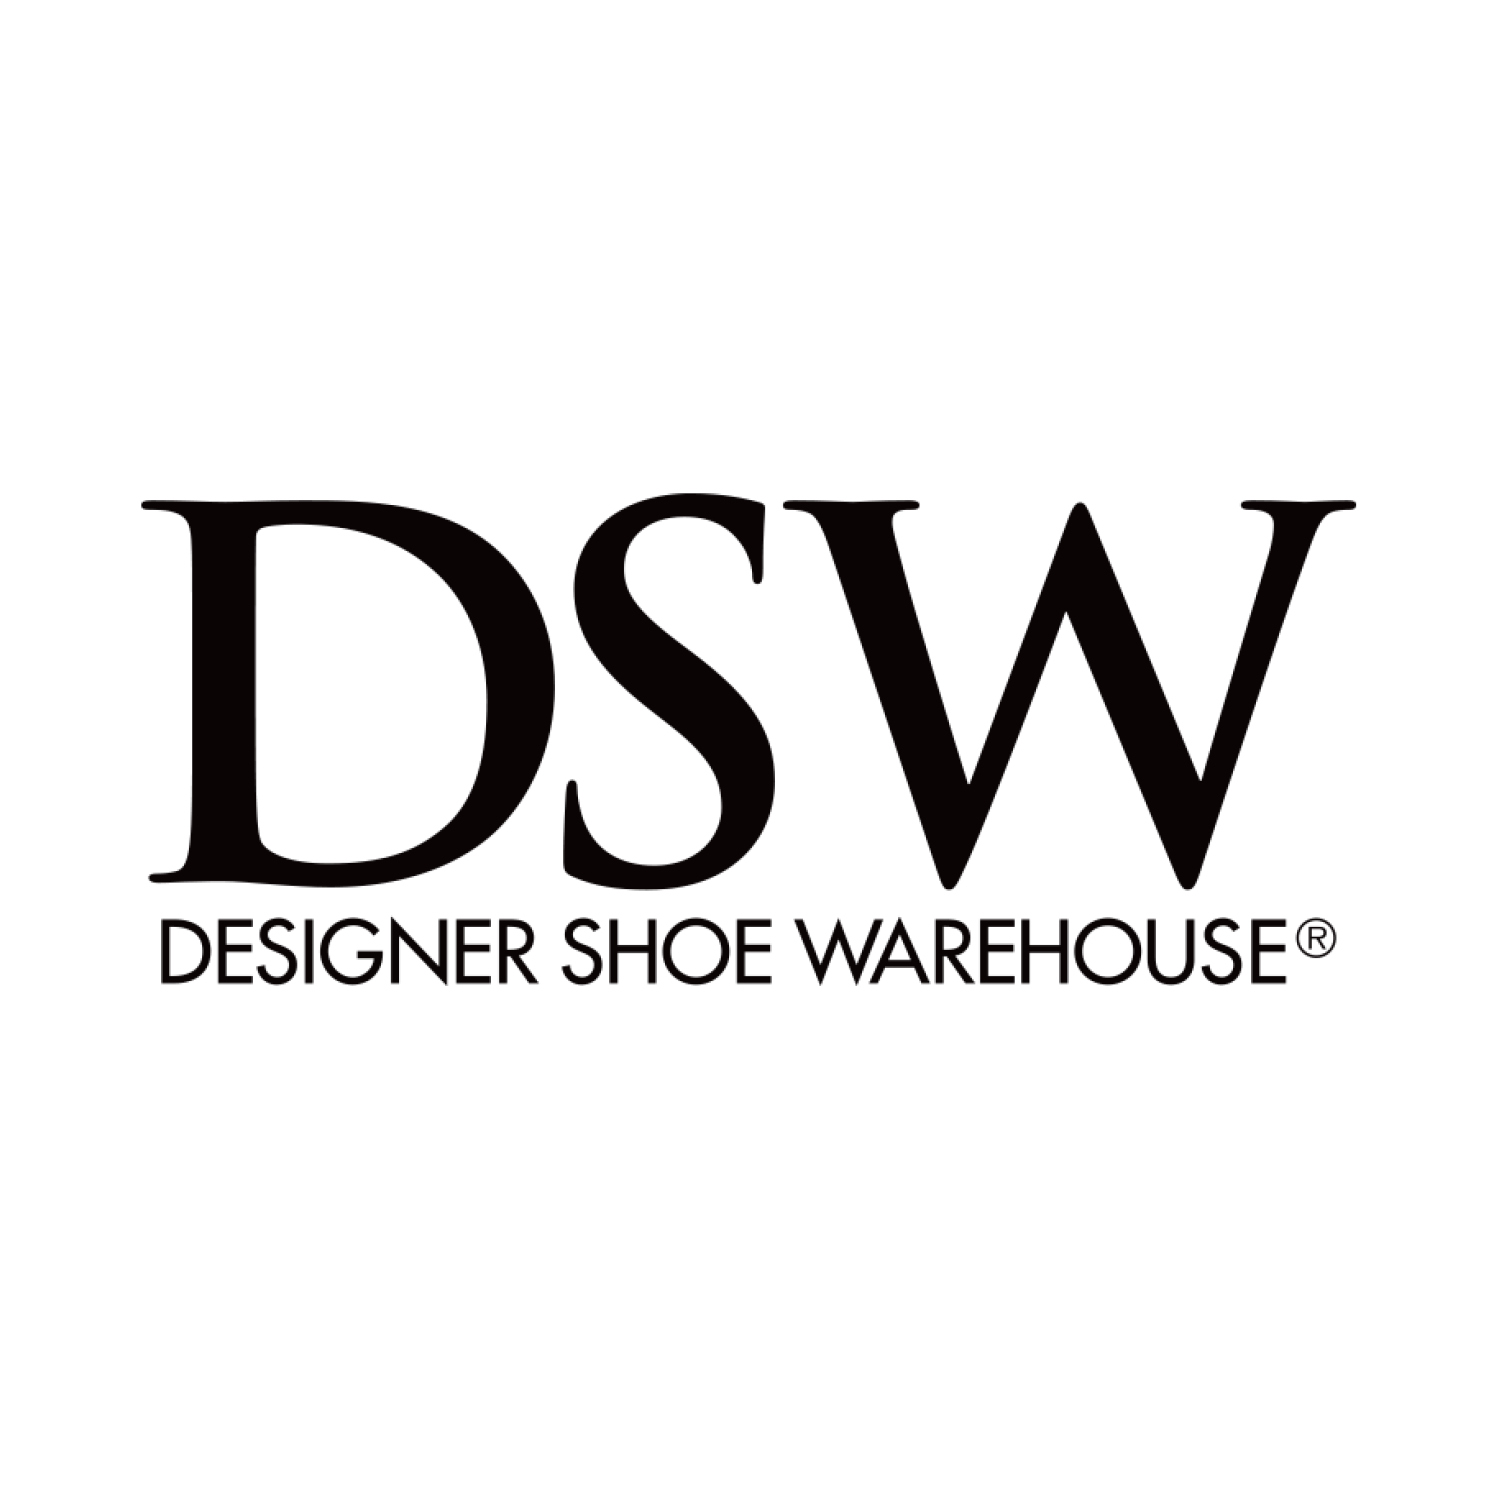 DSW Menu Sign - Price Points: $29.99 - FR